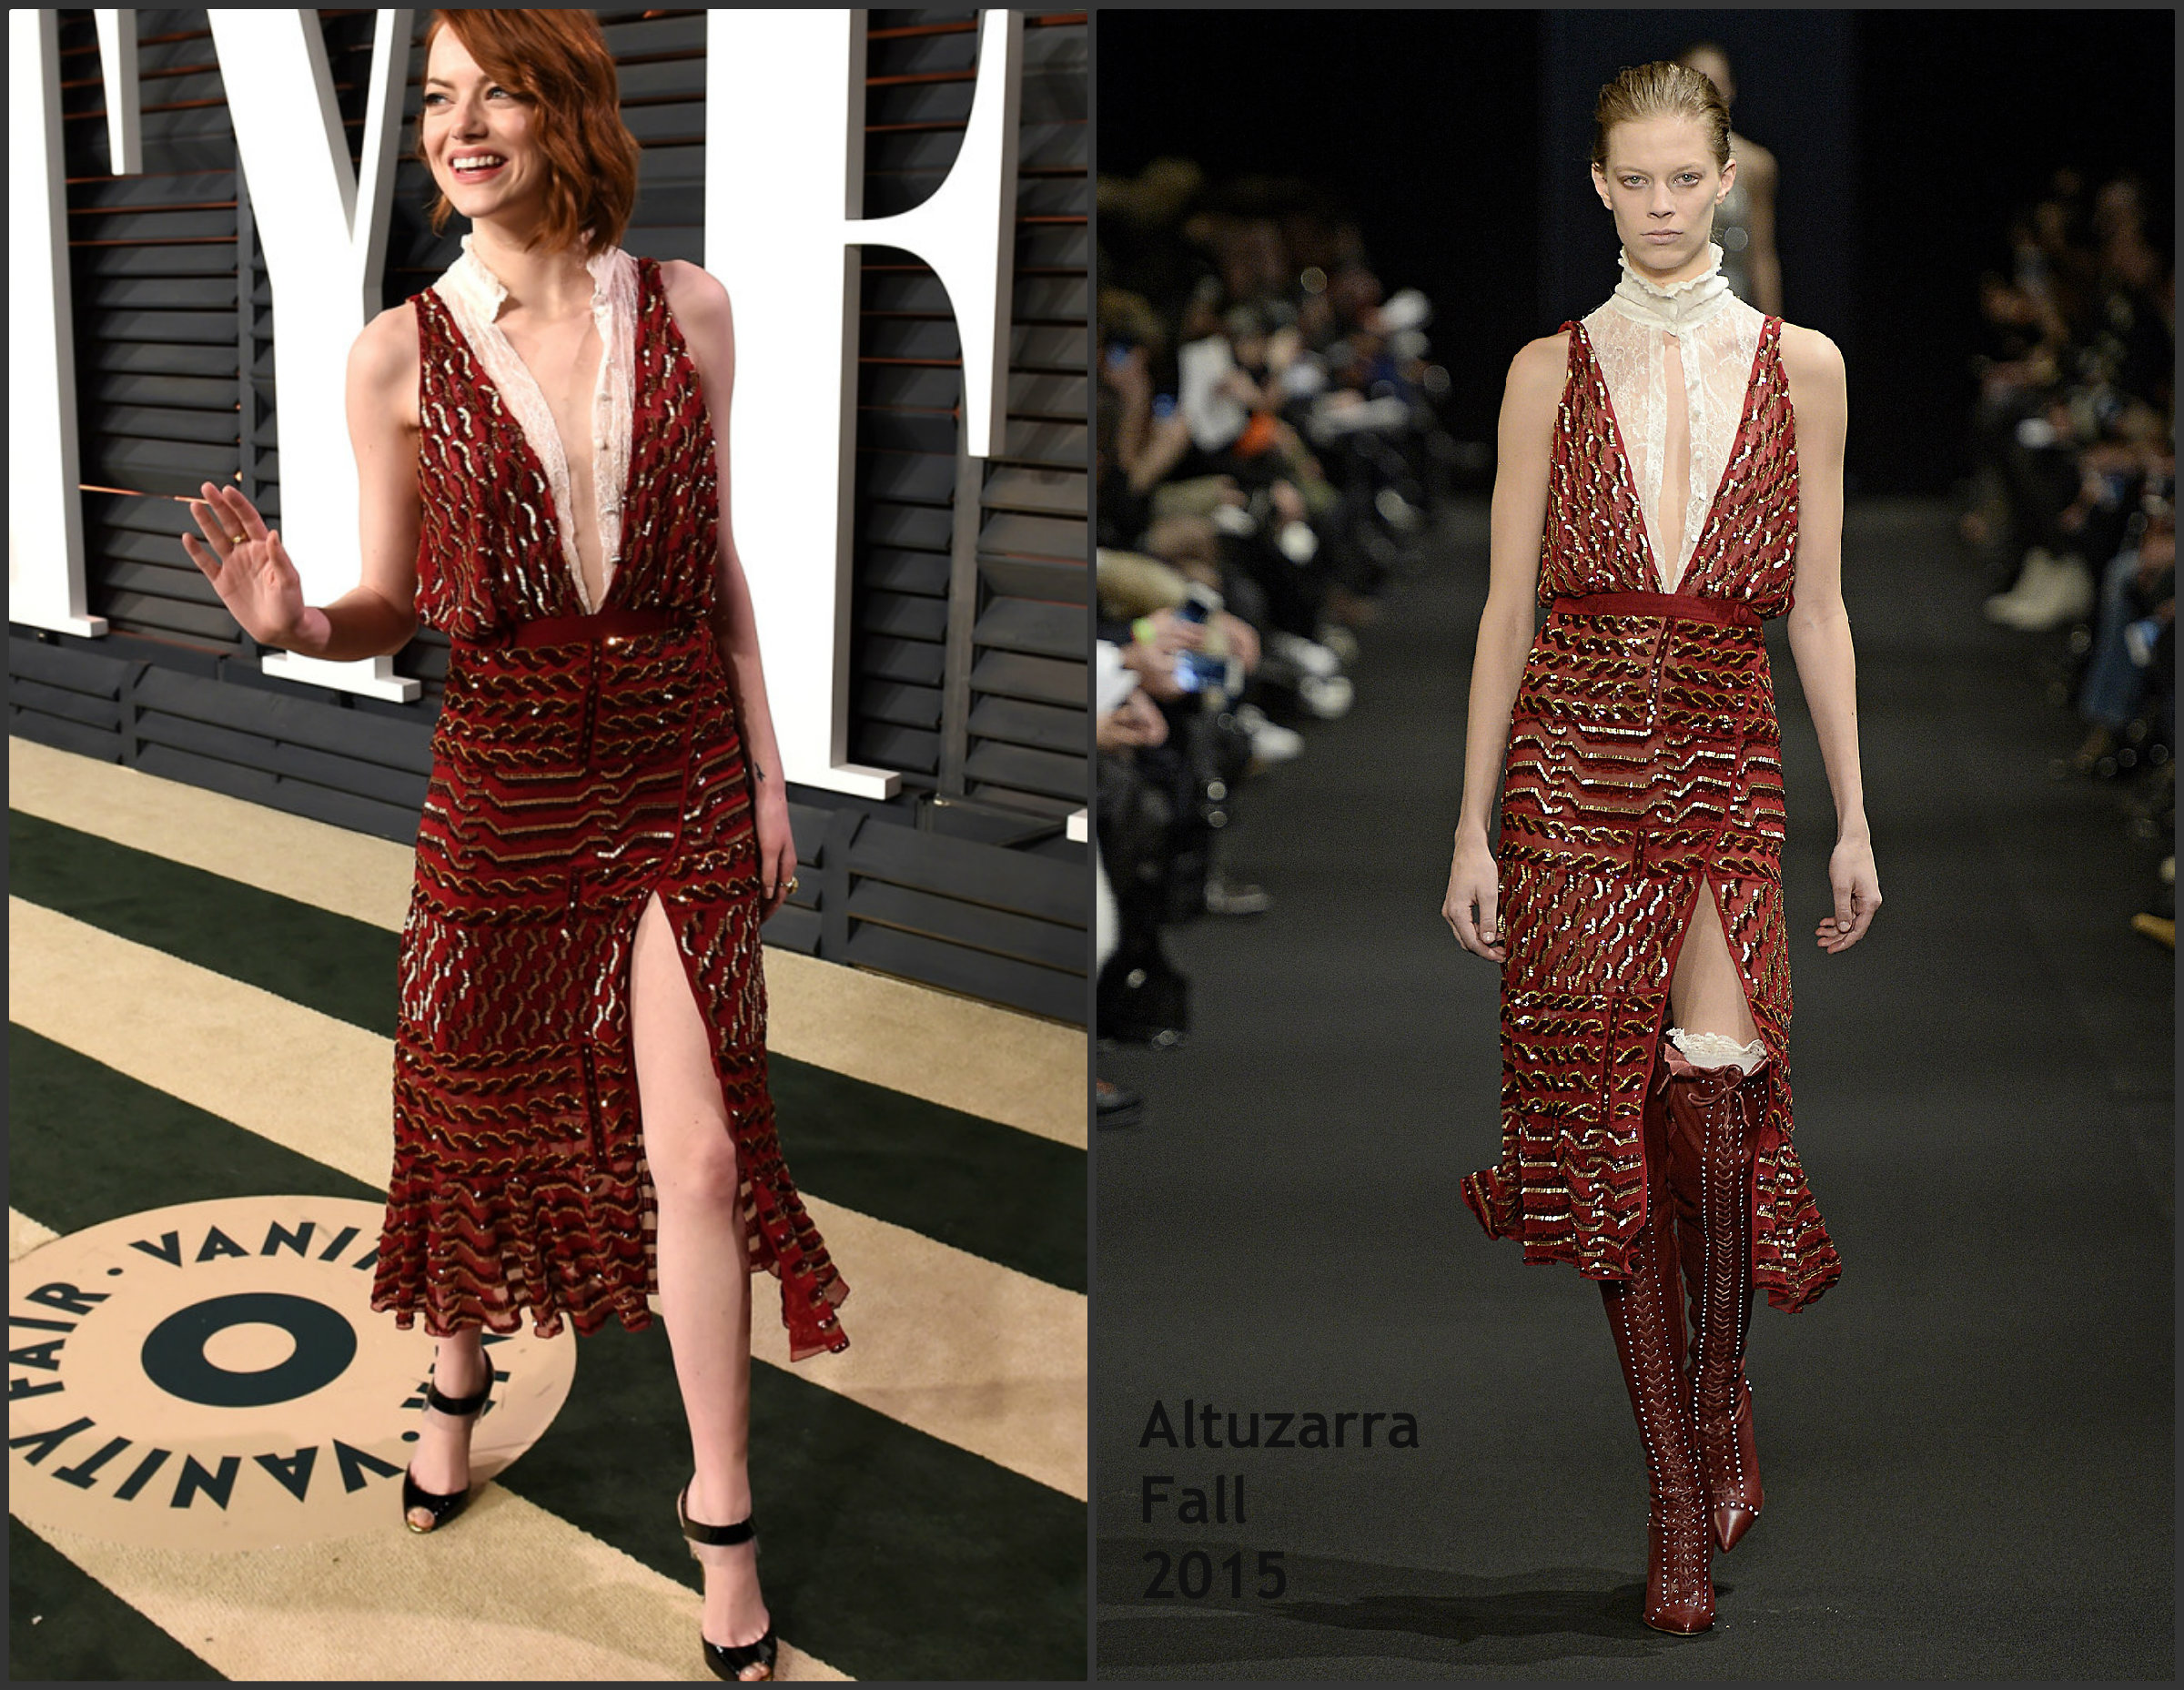 Emma-Stone-In-Altuzarra-at-the-2015-Vanity-Fair-Party